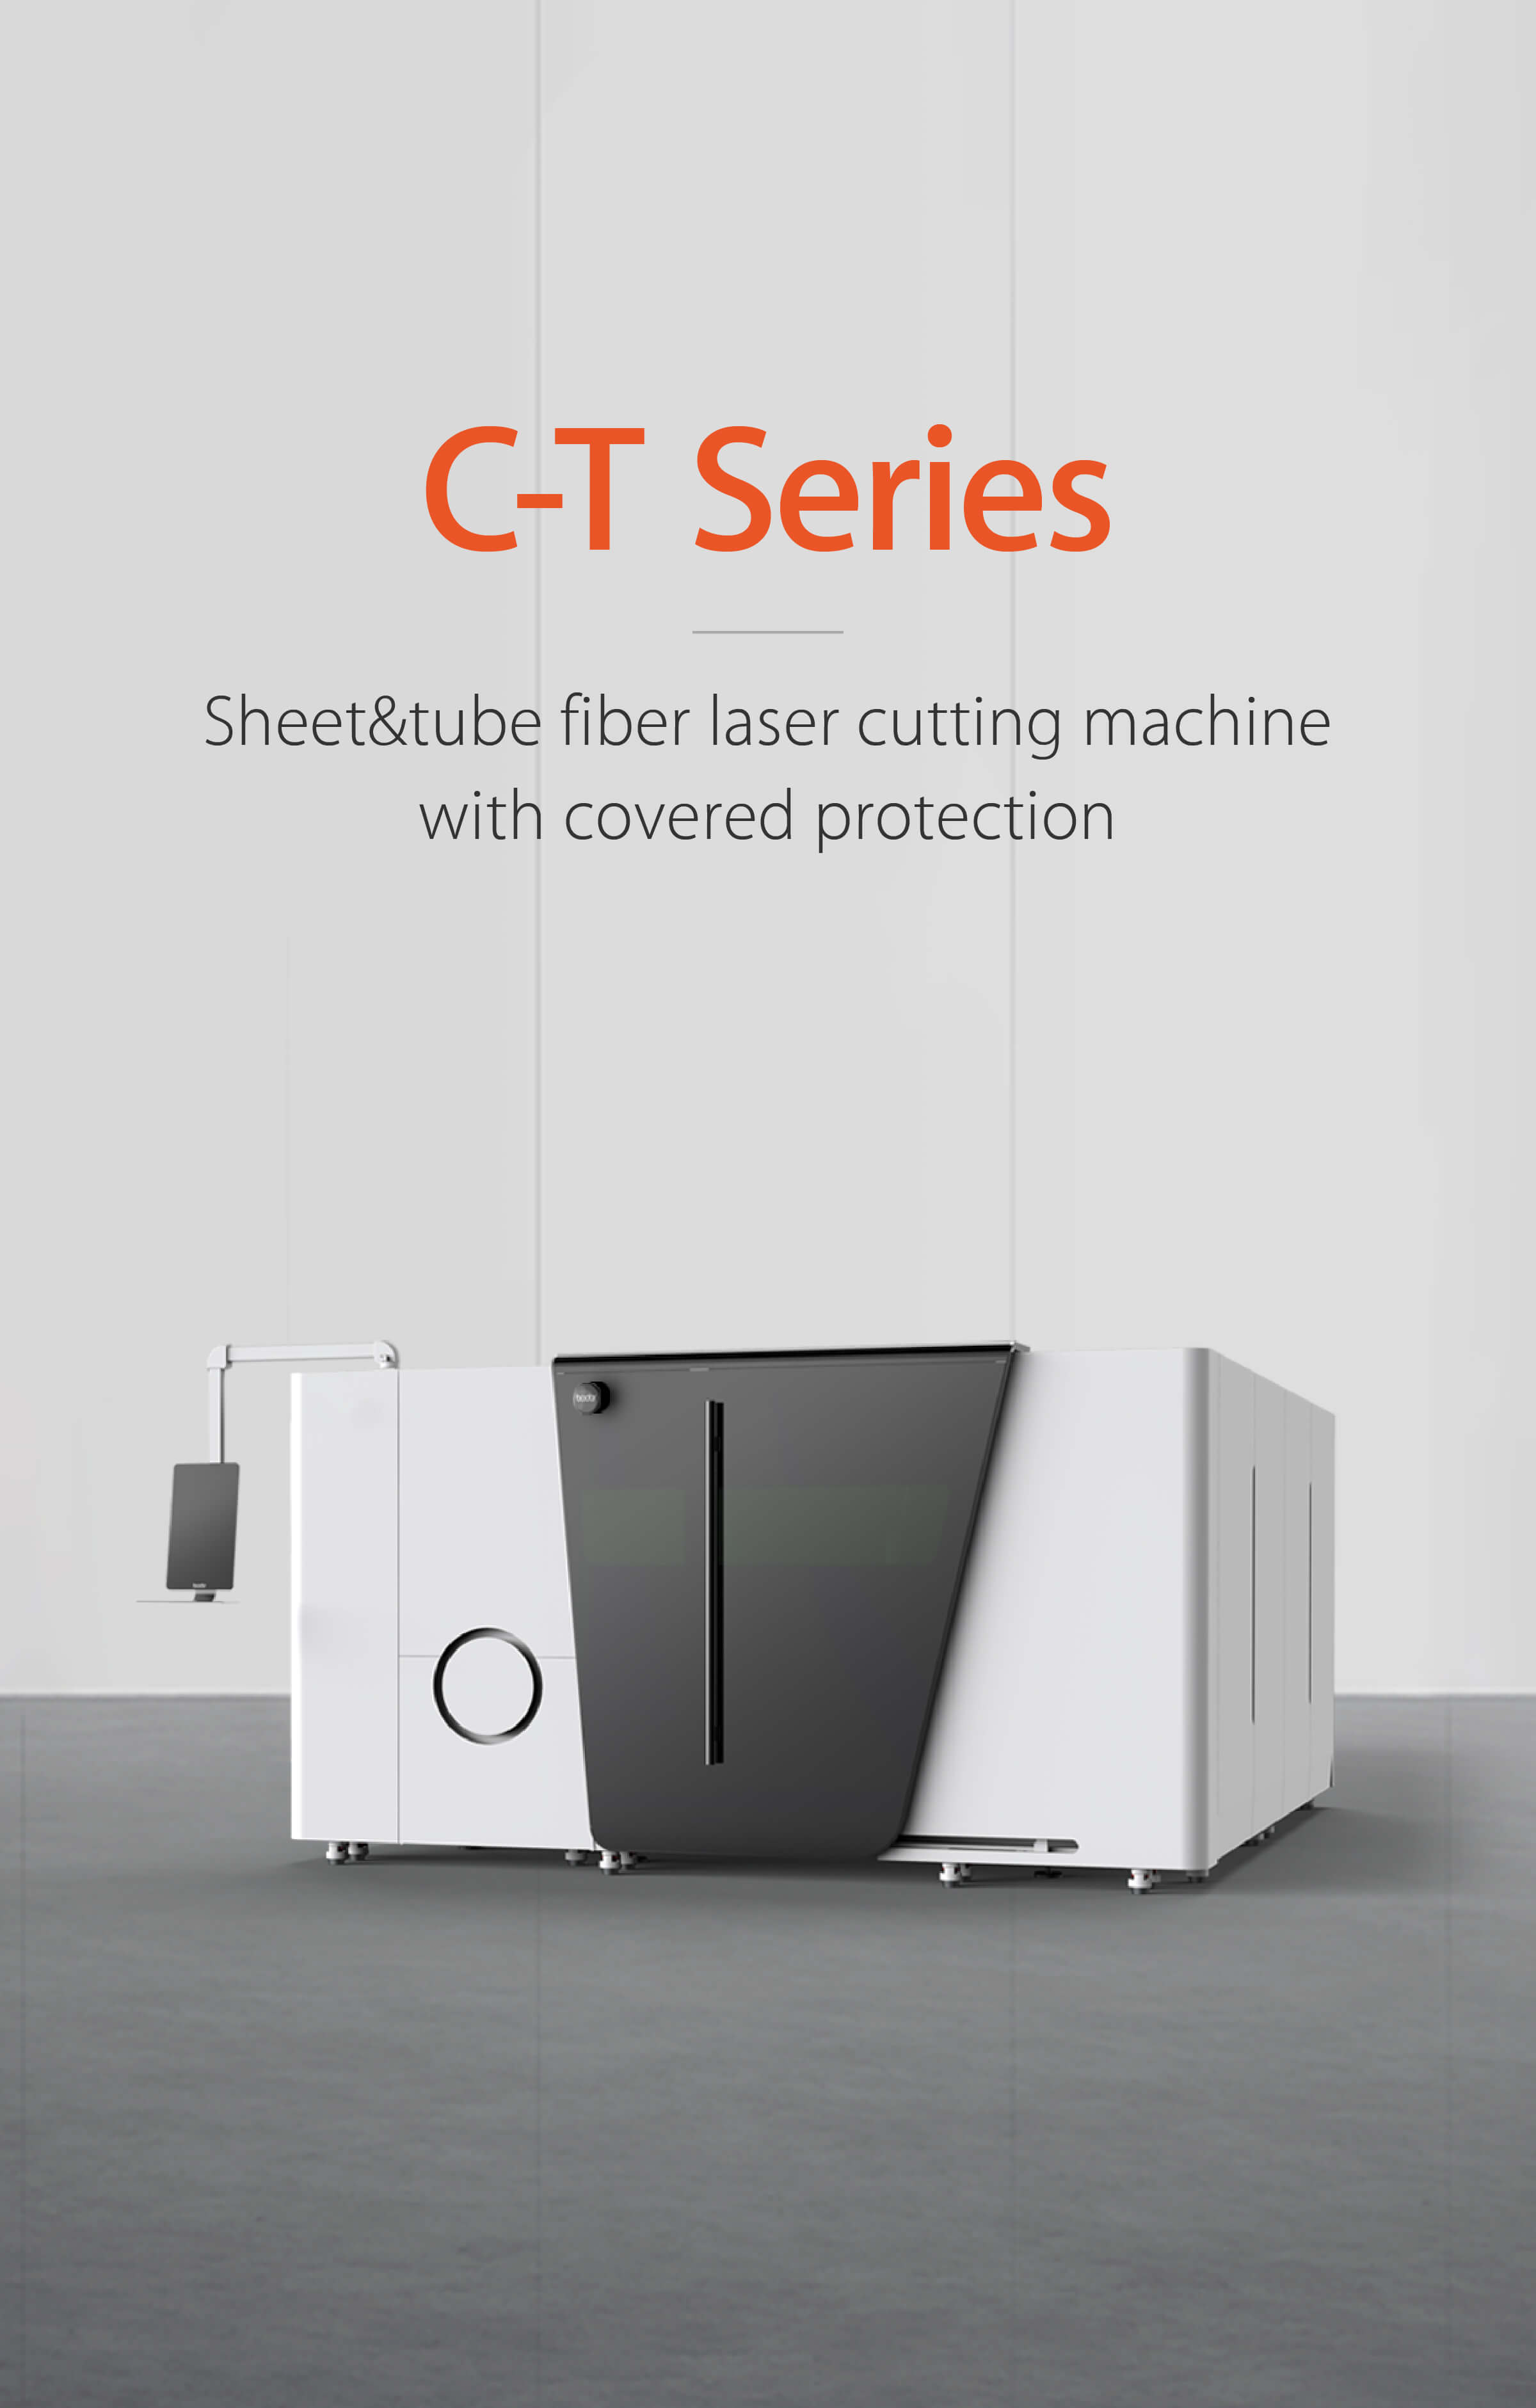 All-around protective covering Sheet & tube fiber laser cutting machine